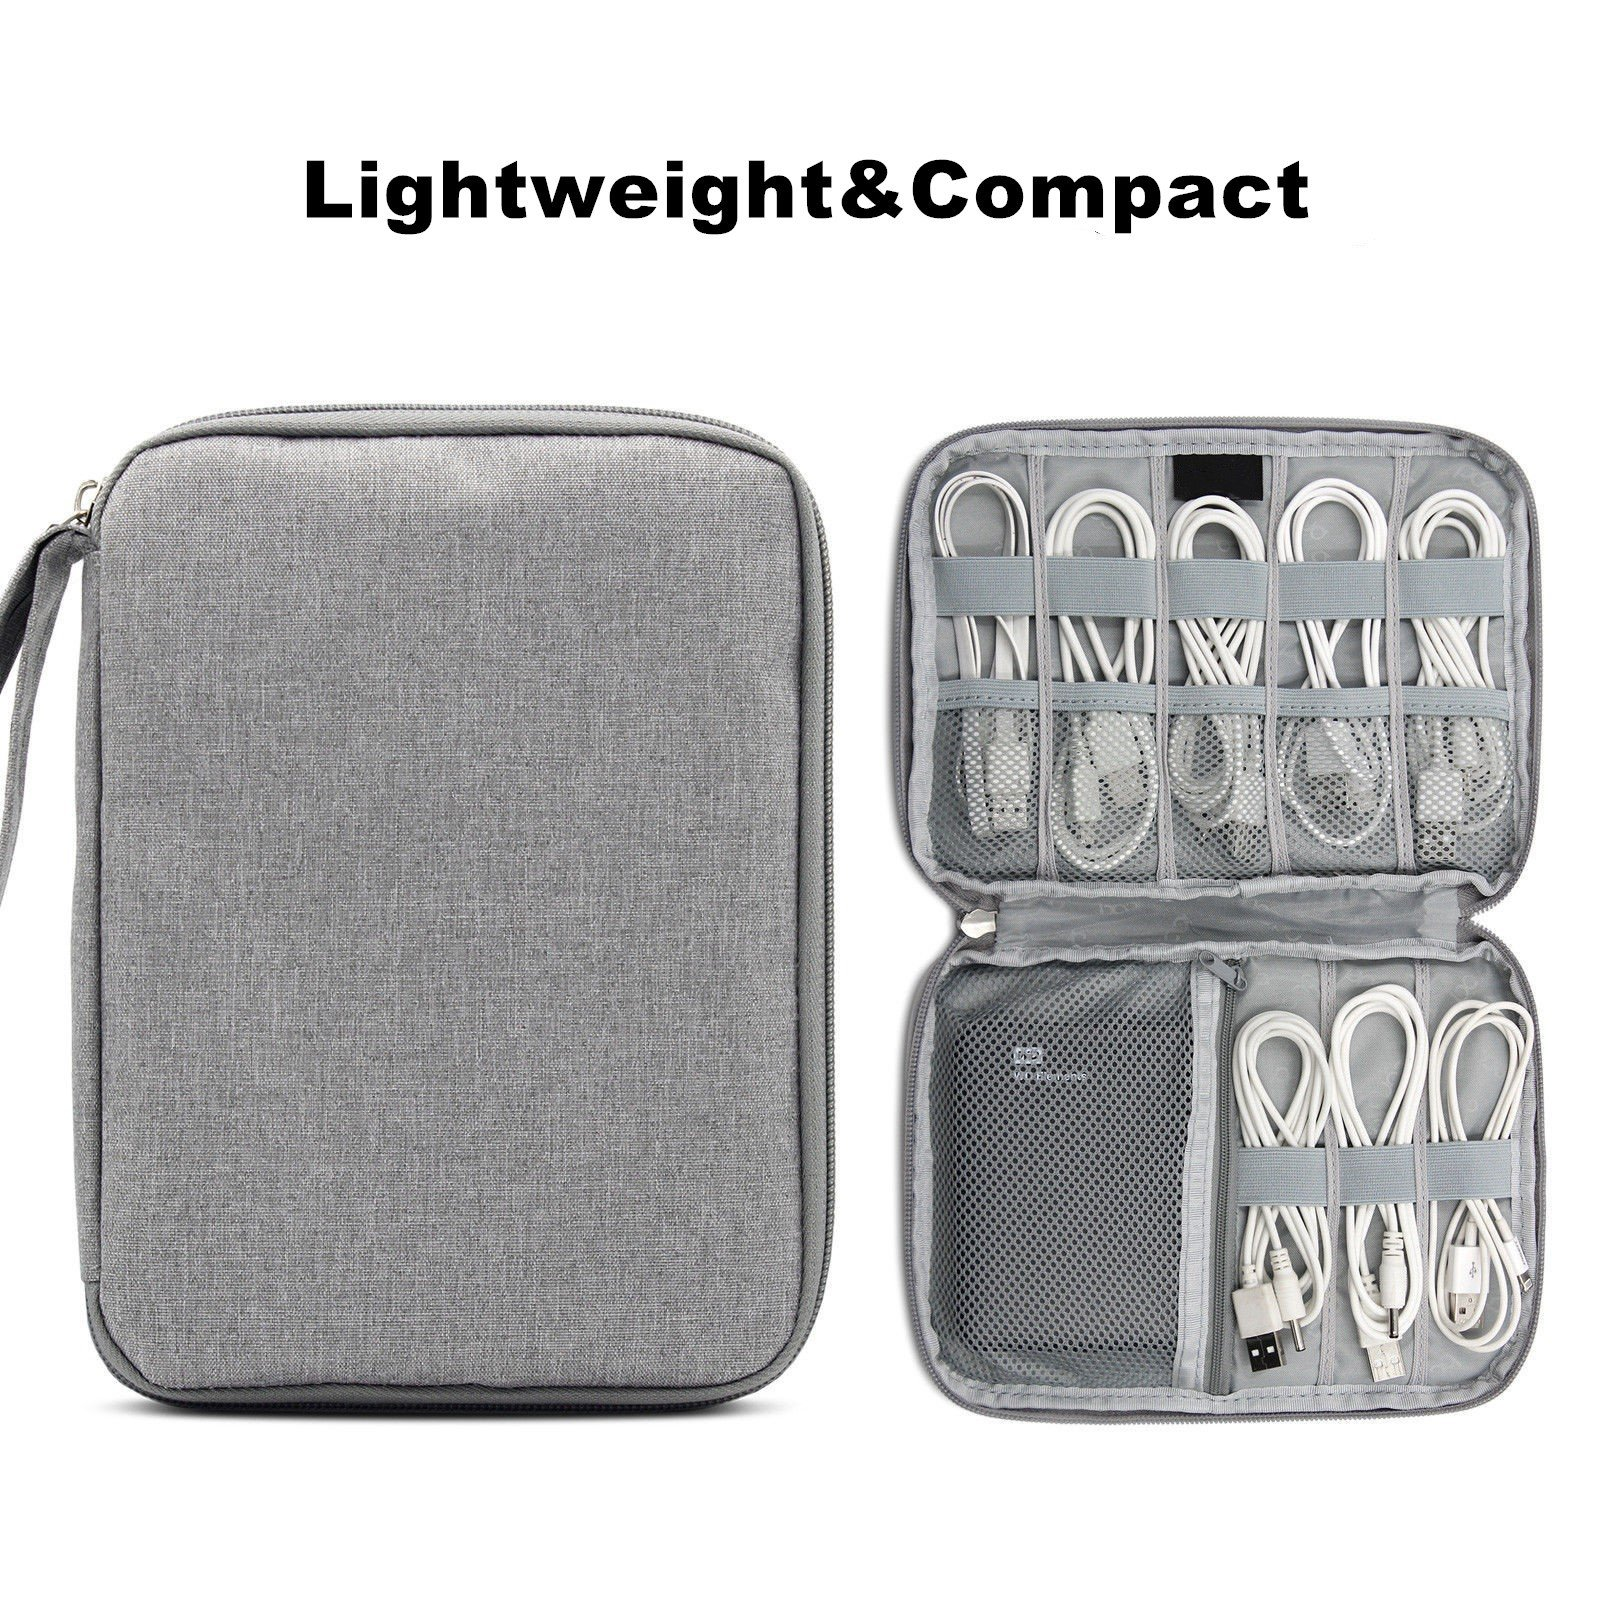 Cable Organizer Electronics Accessories Travel Bag USB Drive Bag Gadgets & Grooming Kit(Grey)